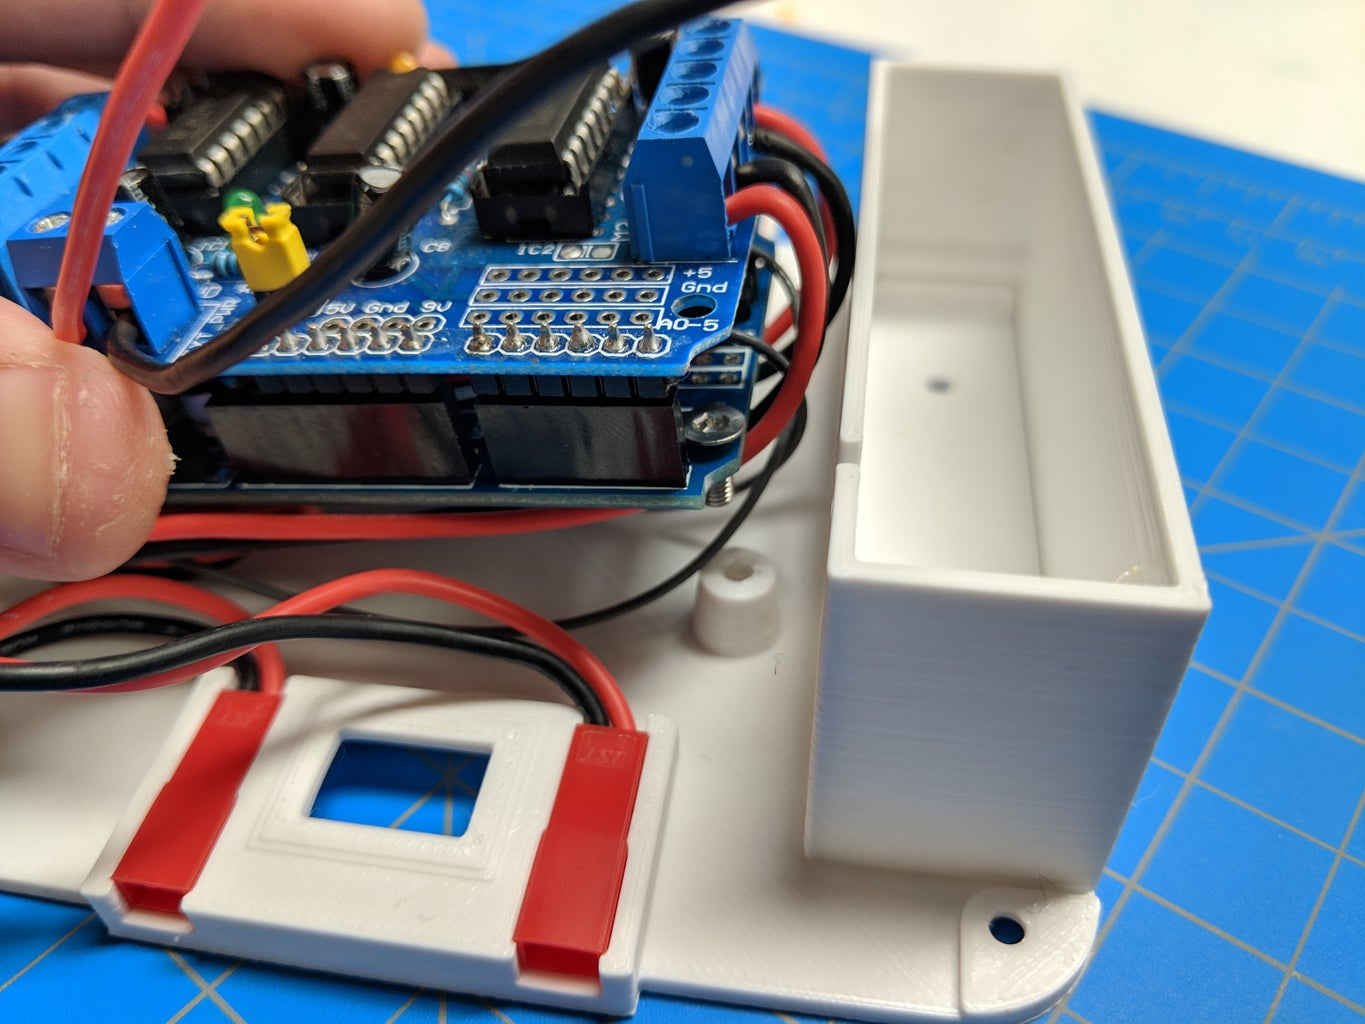 Mounting the Arduino Stack Onto the Chassis Lower Section